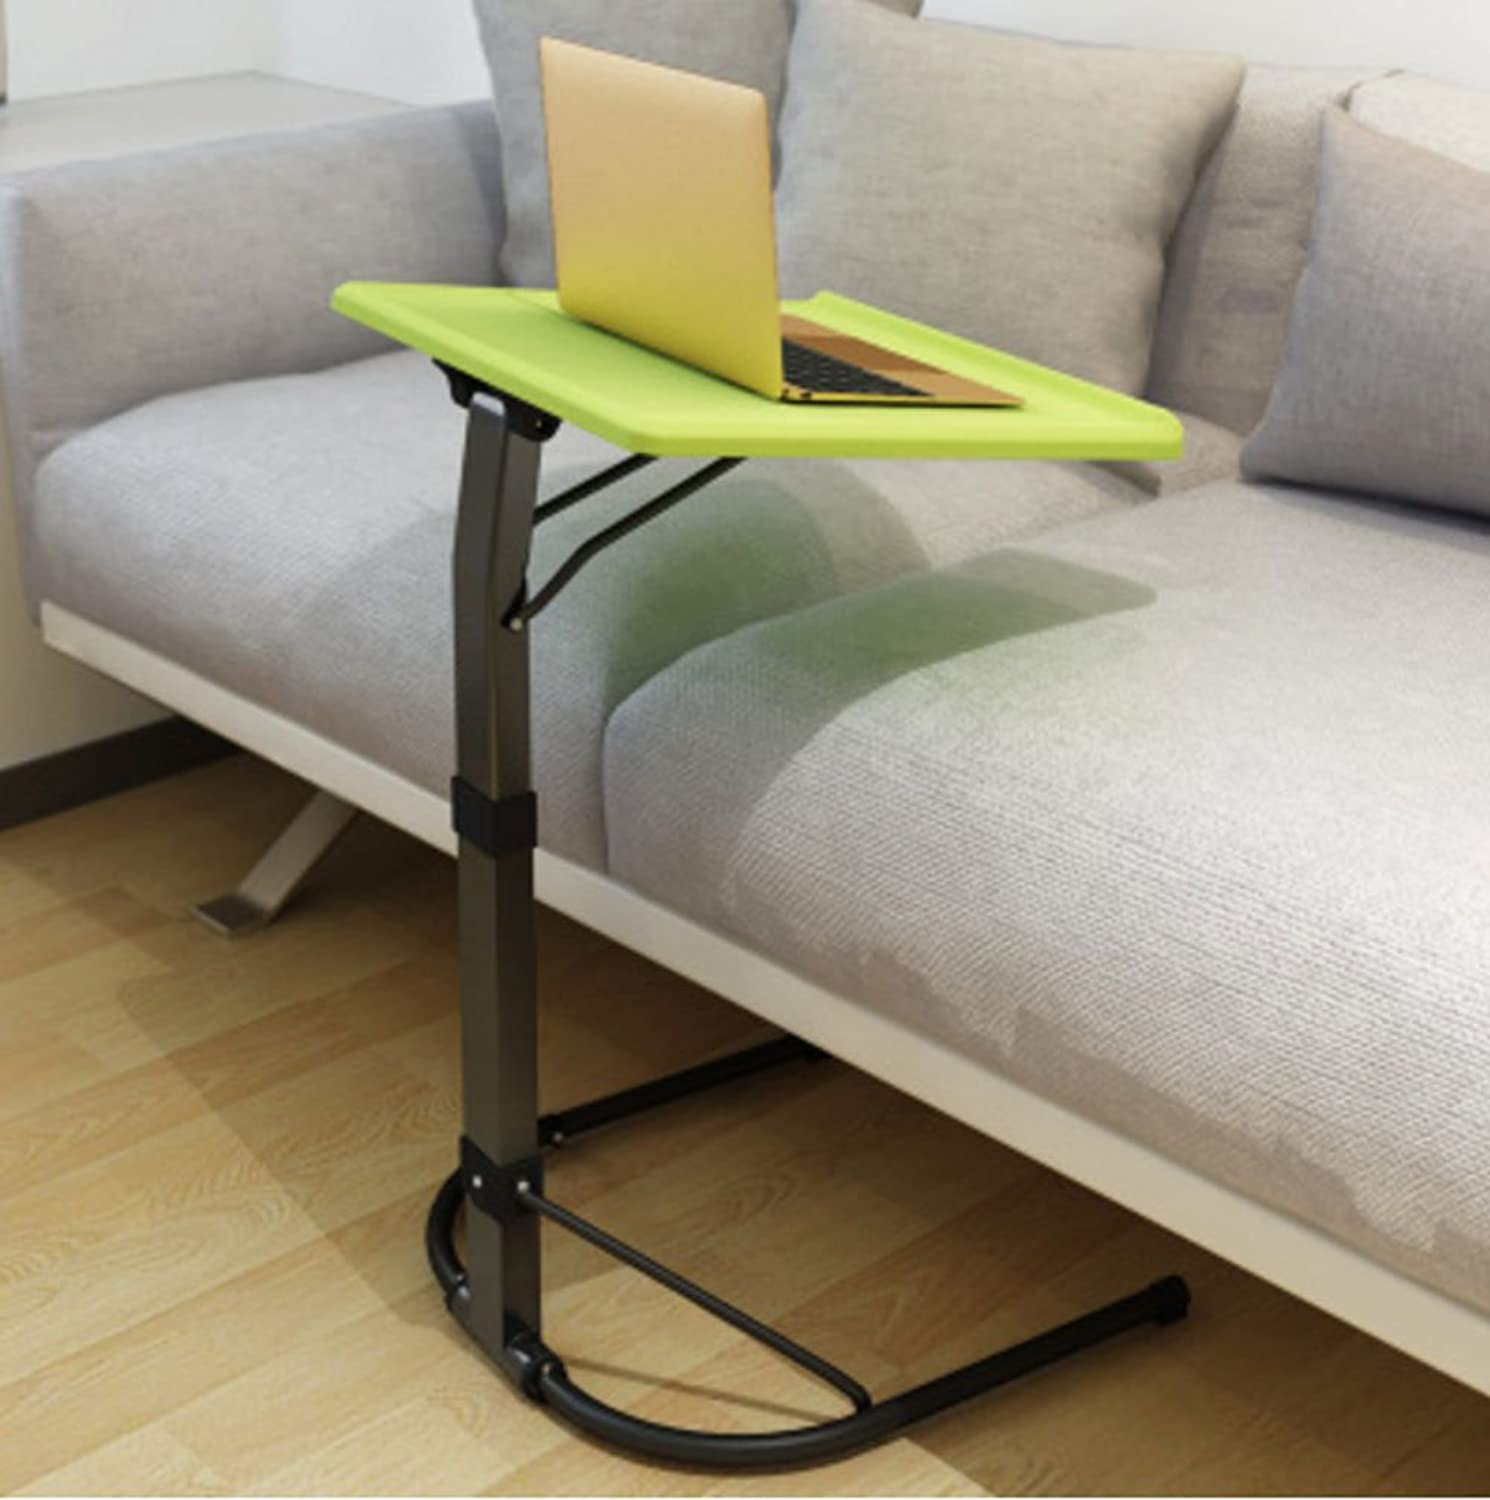 Adjustable Laptop Table Bed Lazy Table fold Lift it can Move Desk Simple Sofa Table Bedside Table Foldable (color    3)